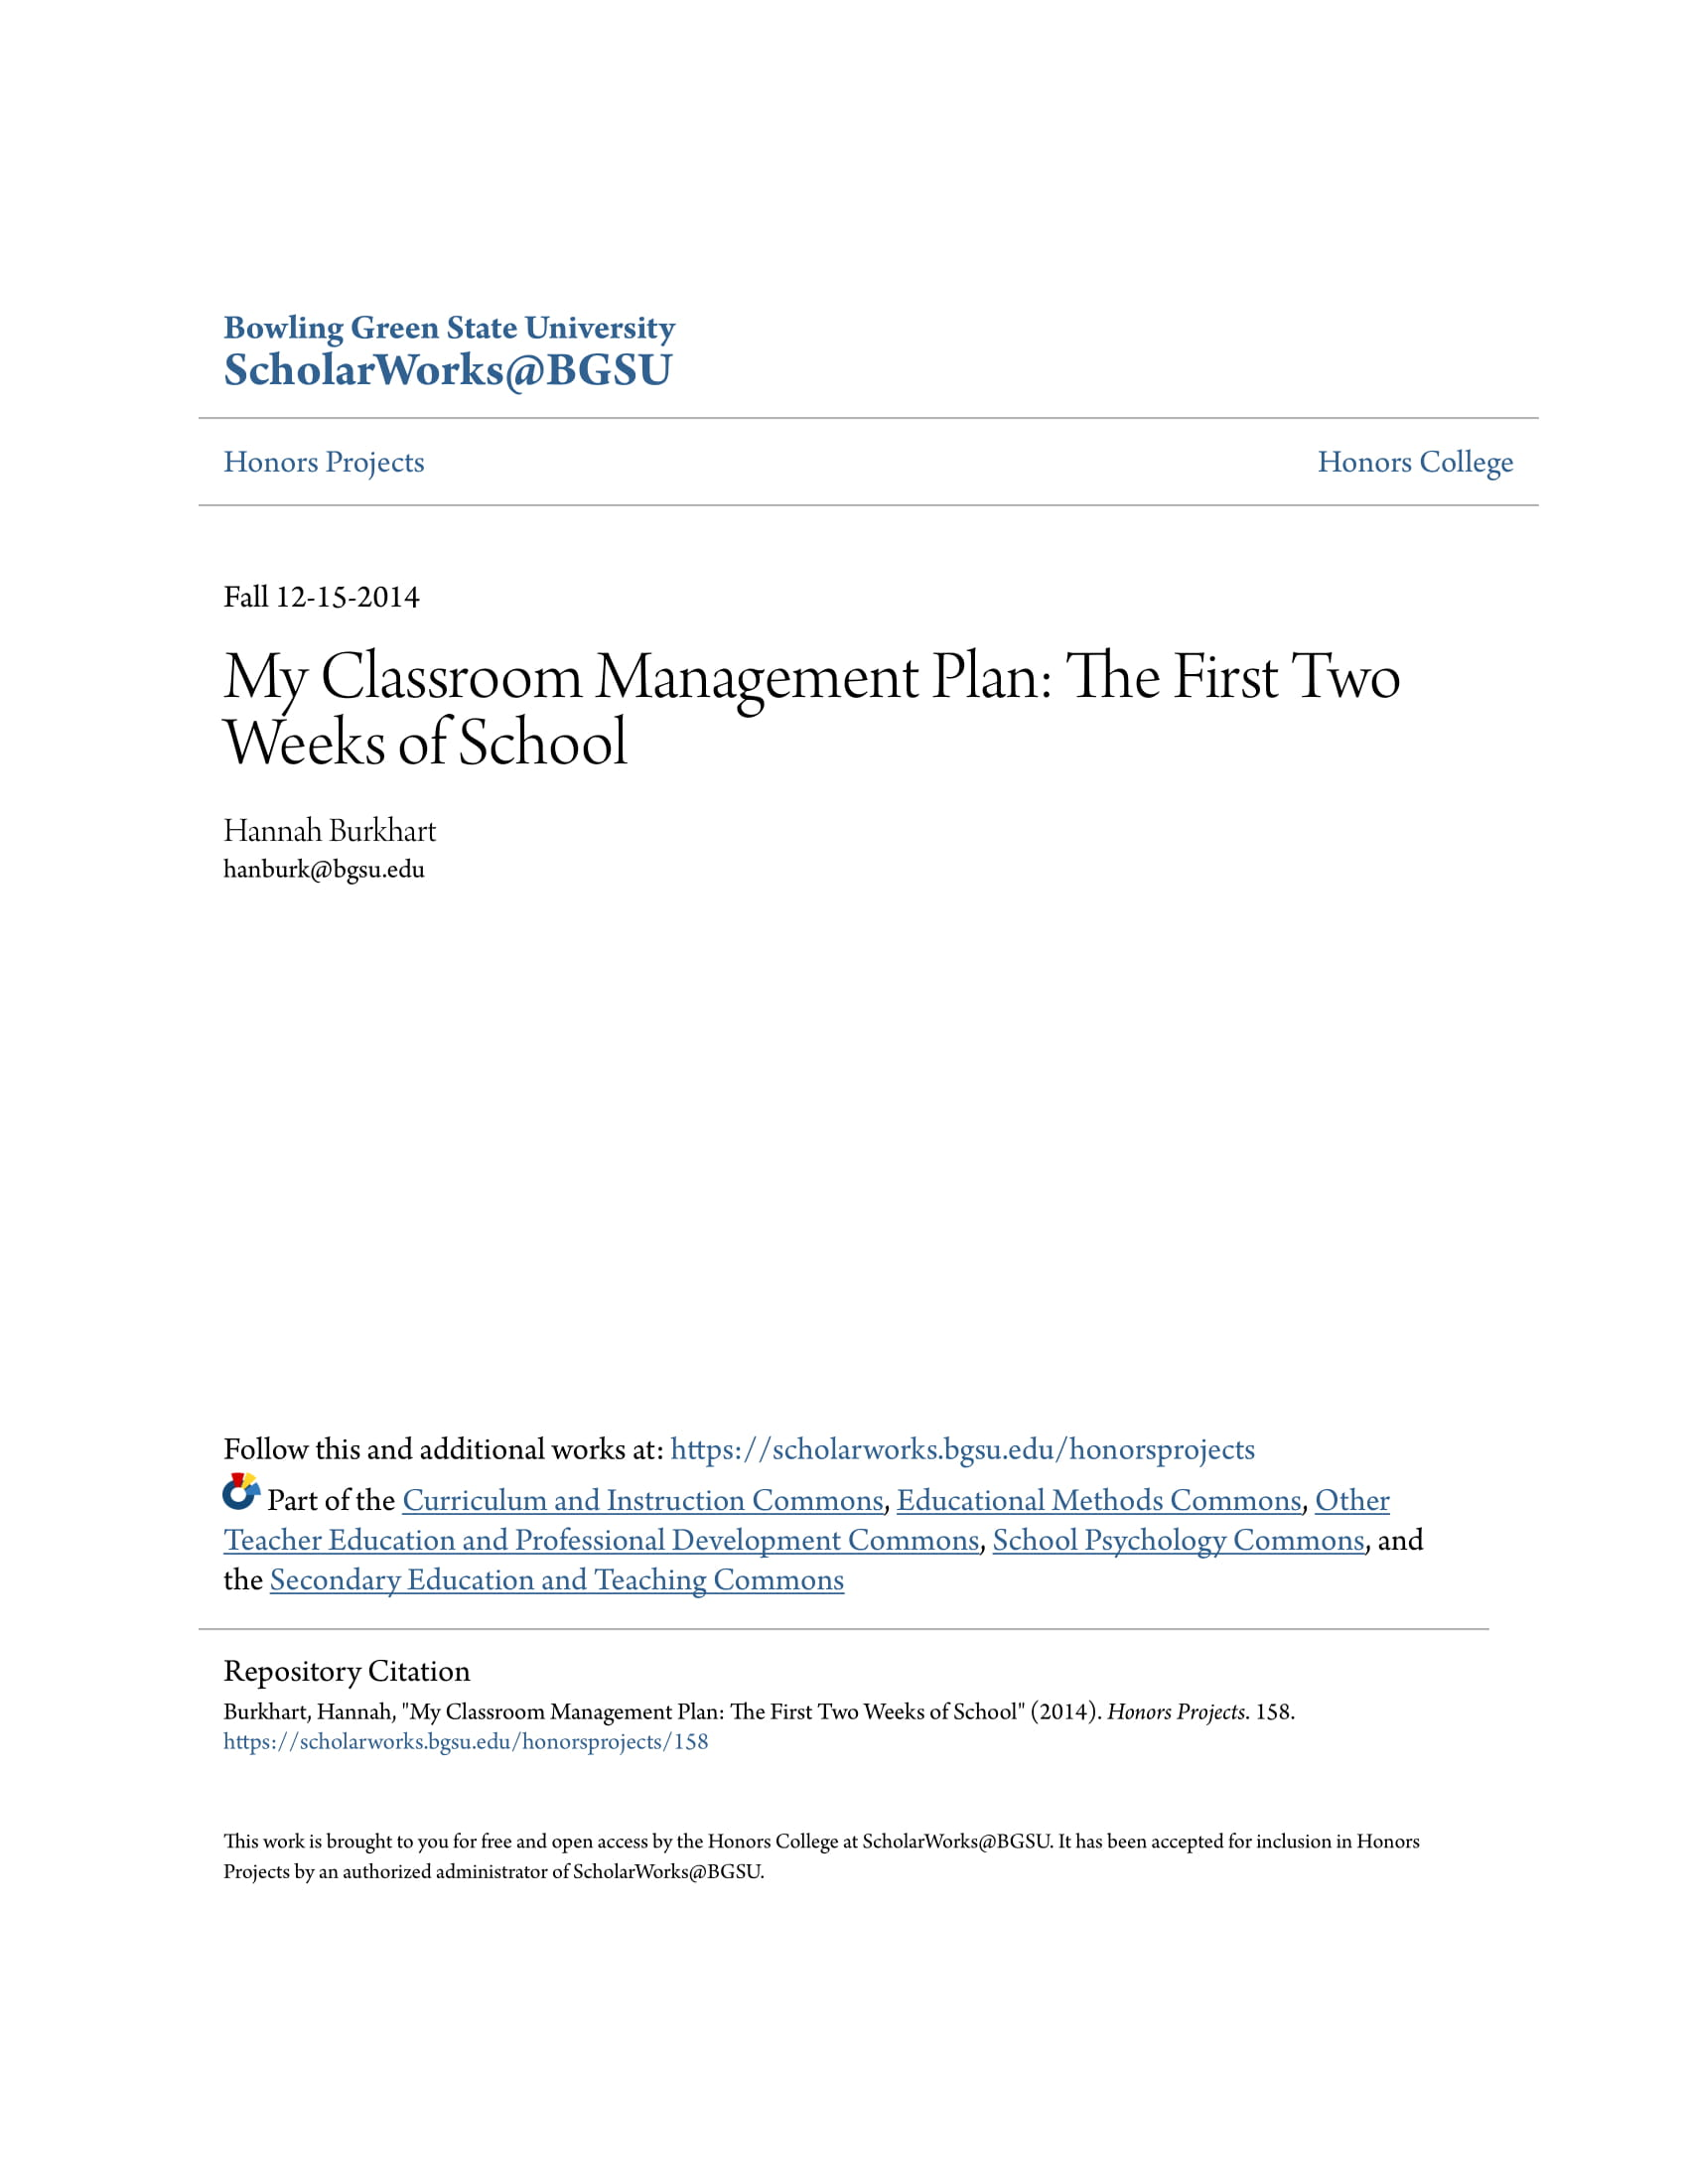 2 week classroom management plan example